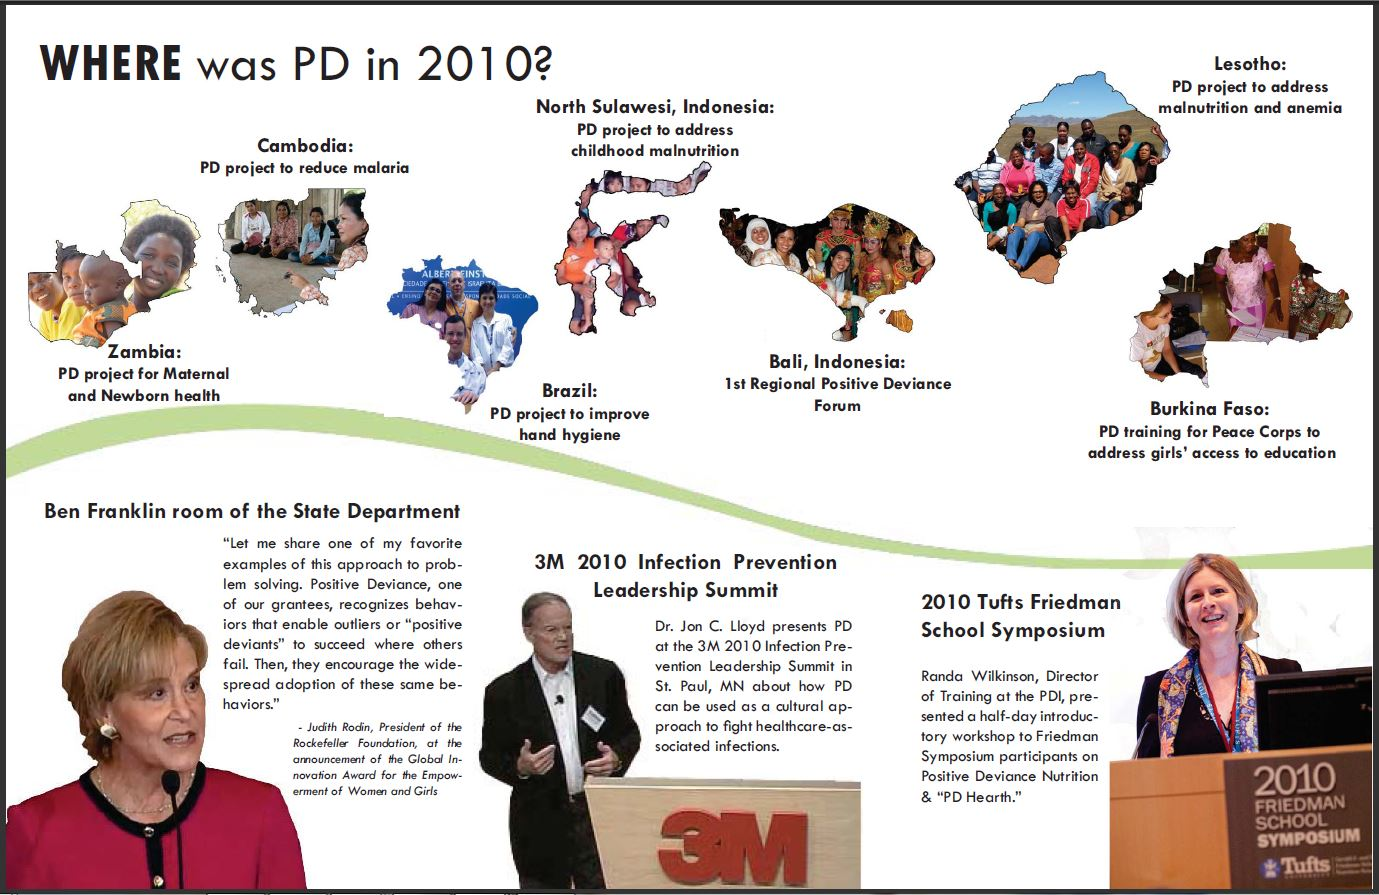 PDI Newsletter Page 3 of 4, January 2011